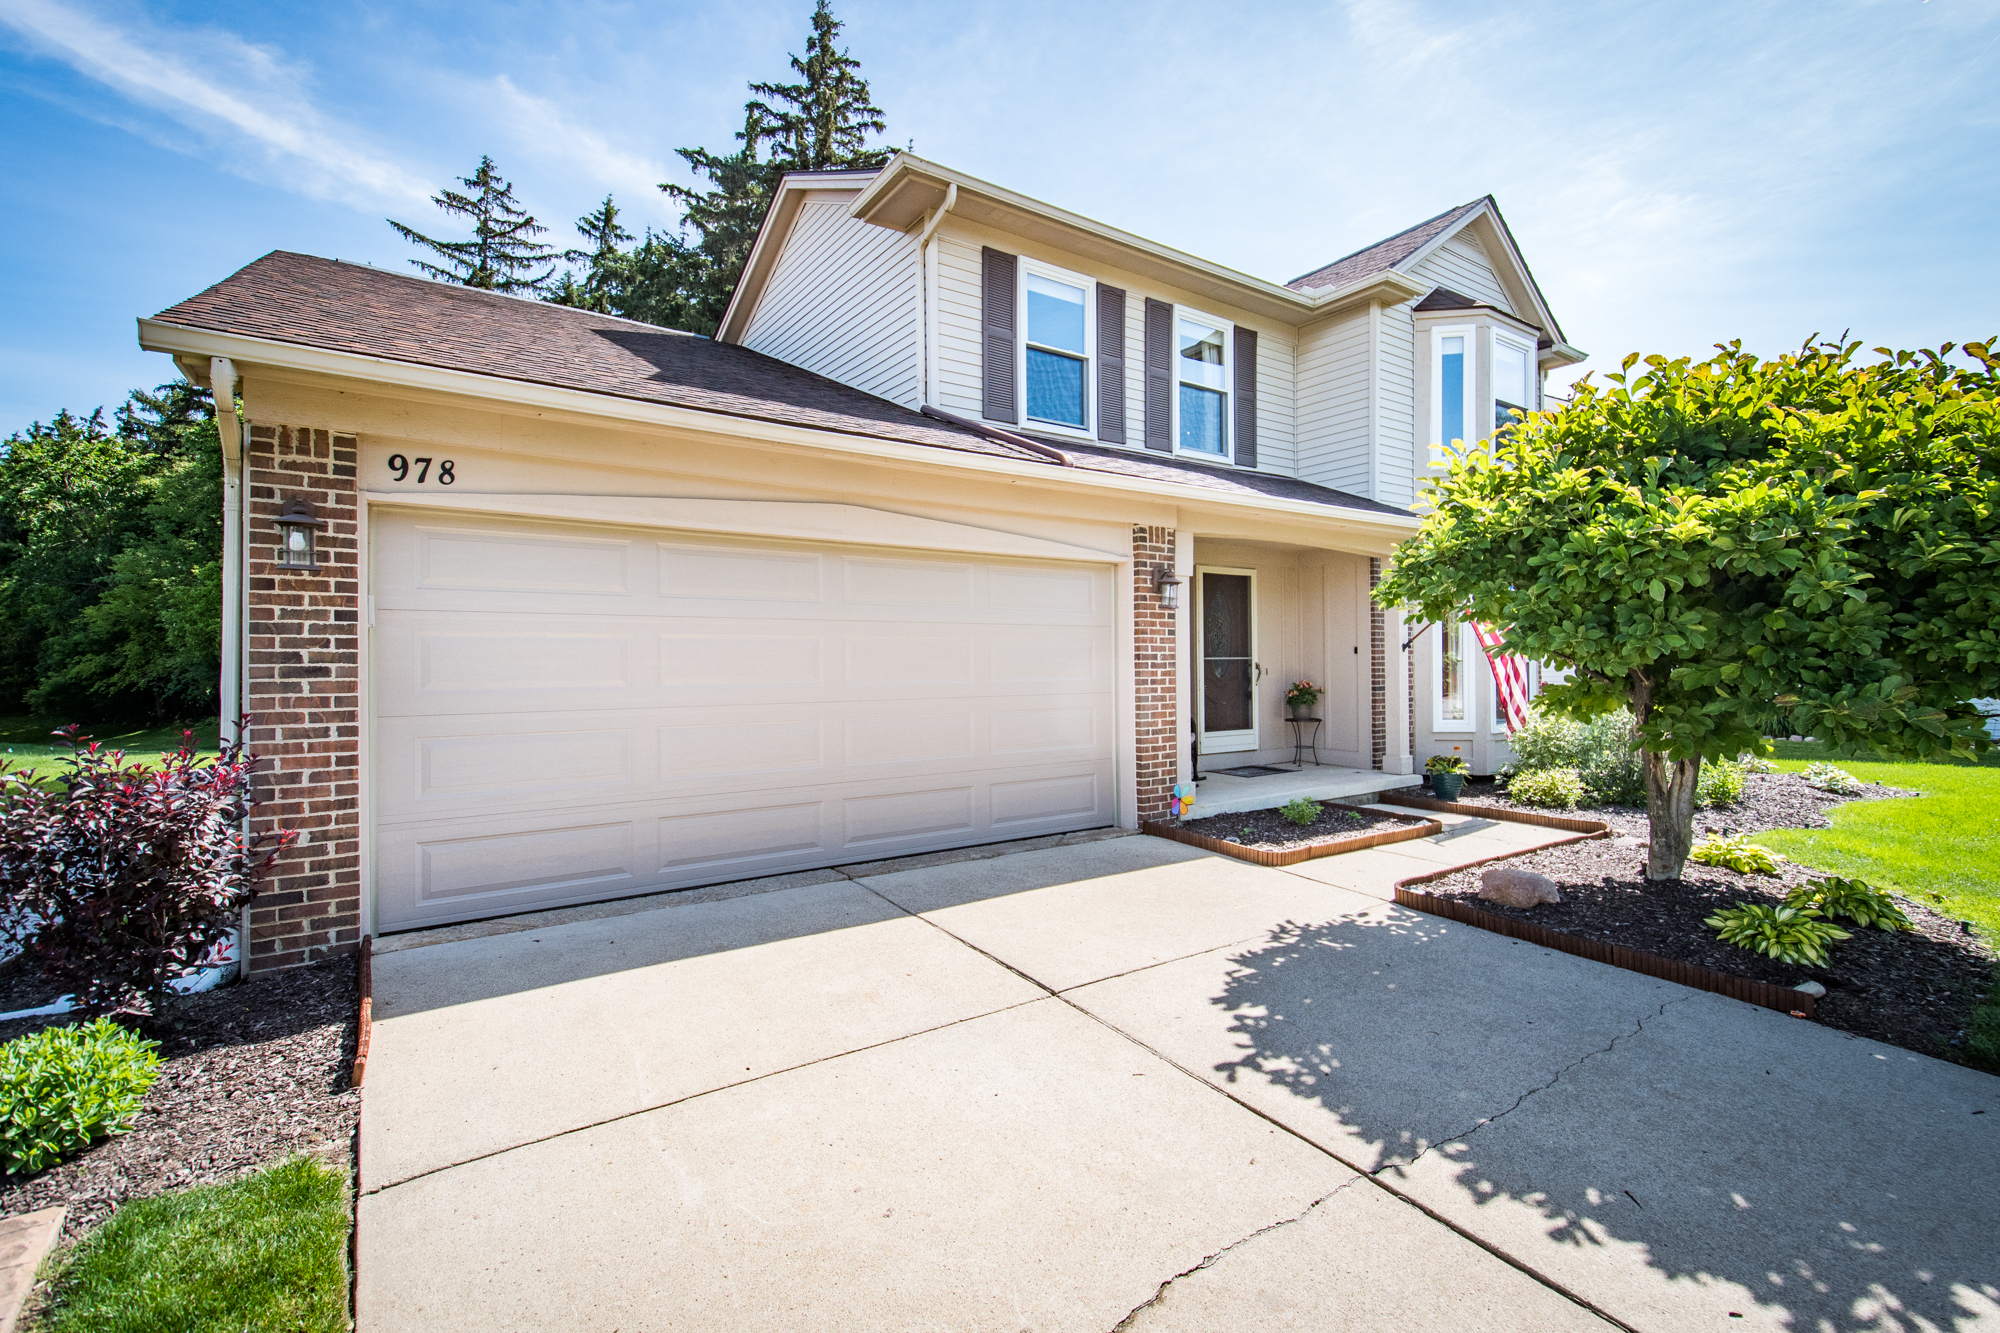 Westbrooke Drive, South Lyon - $290,000   DOM 38 / Sold for 98% of asking price / 23 Showings